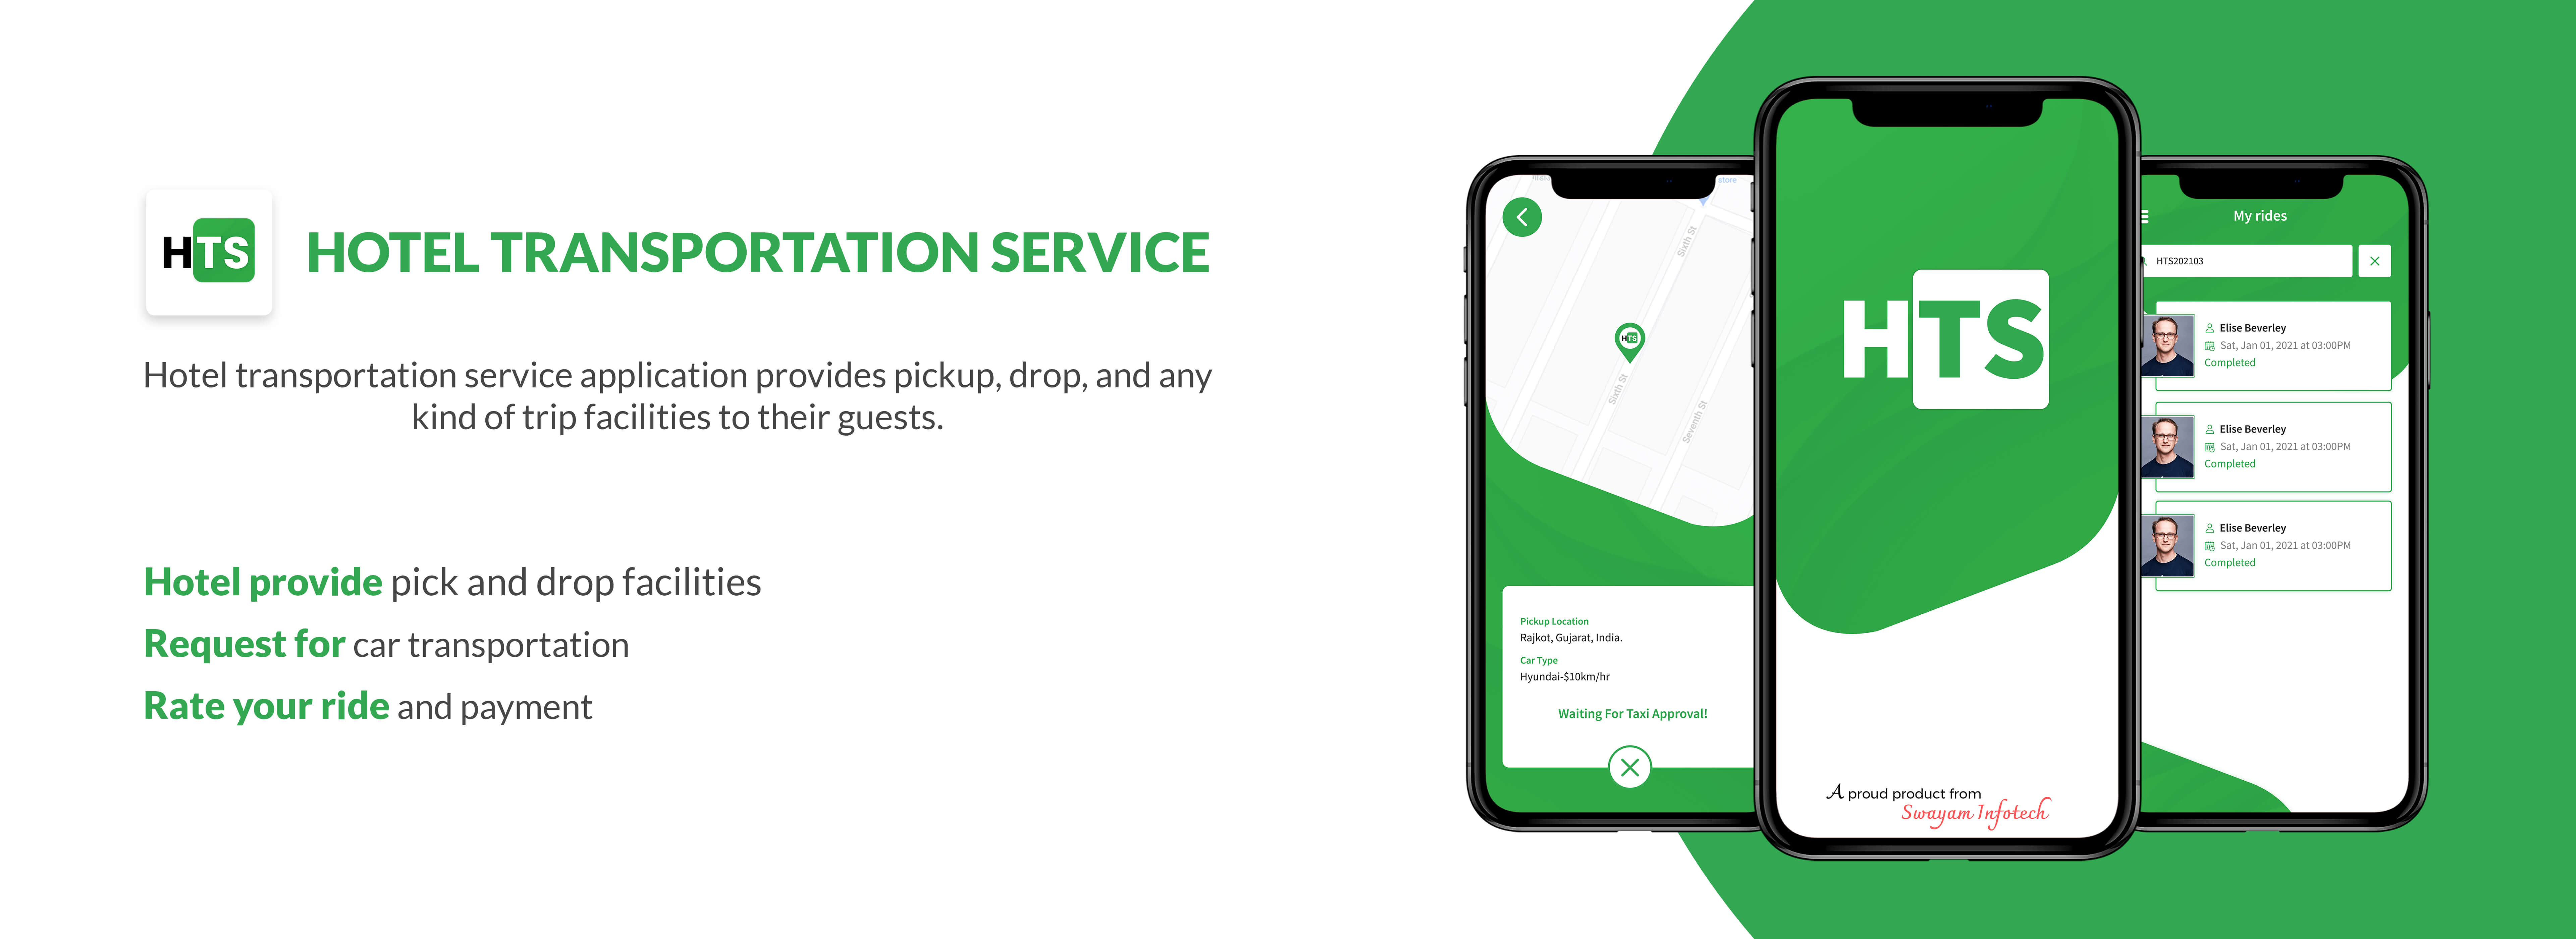 Hotel Transportation Service Application